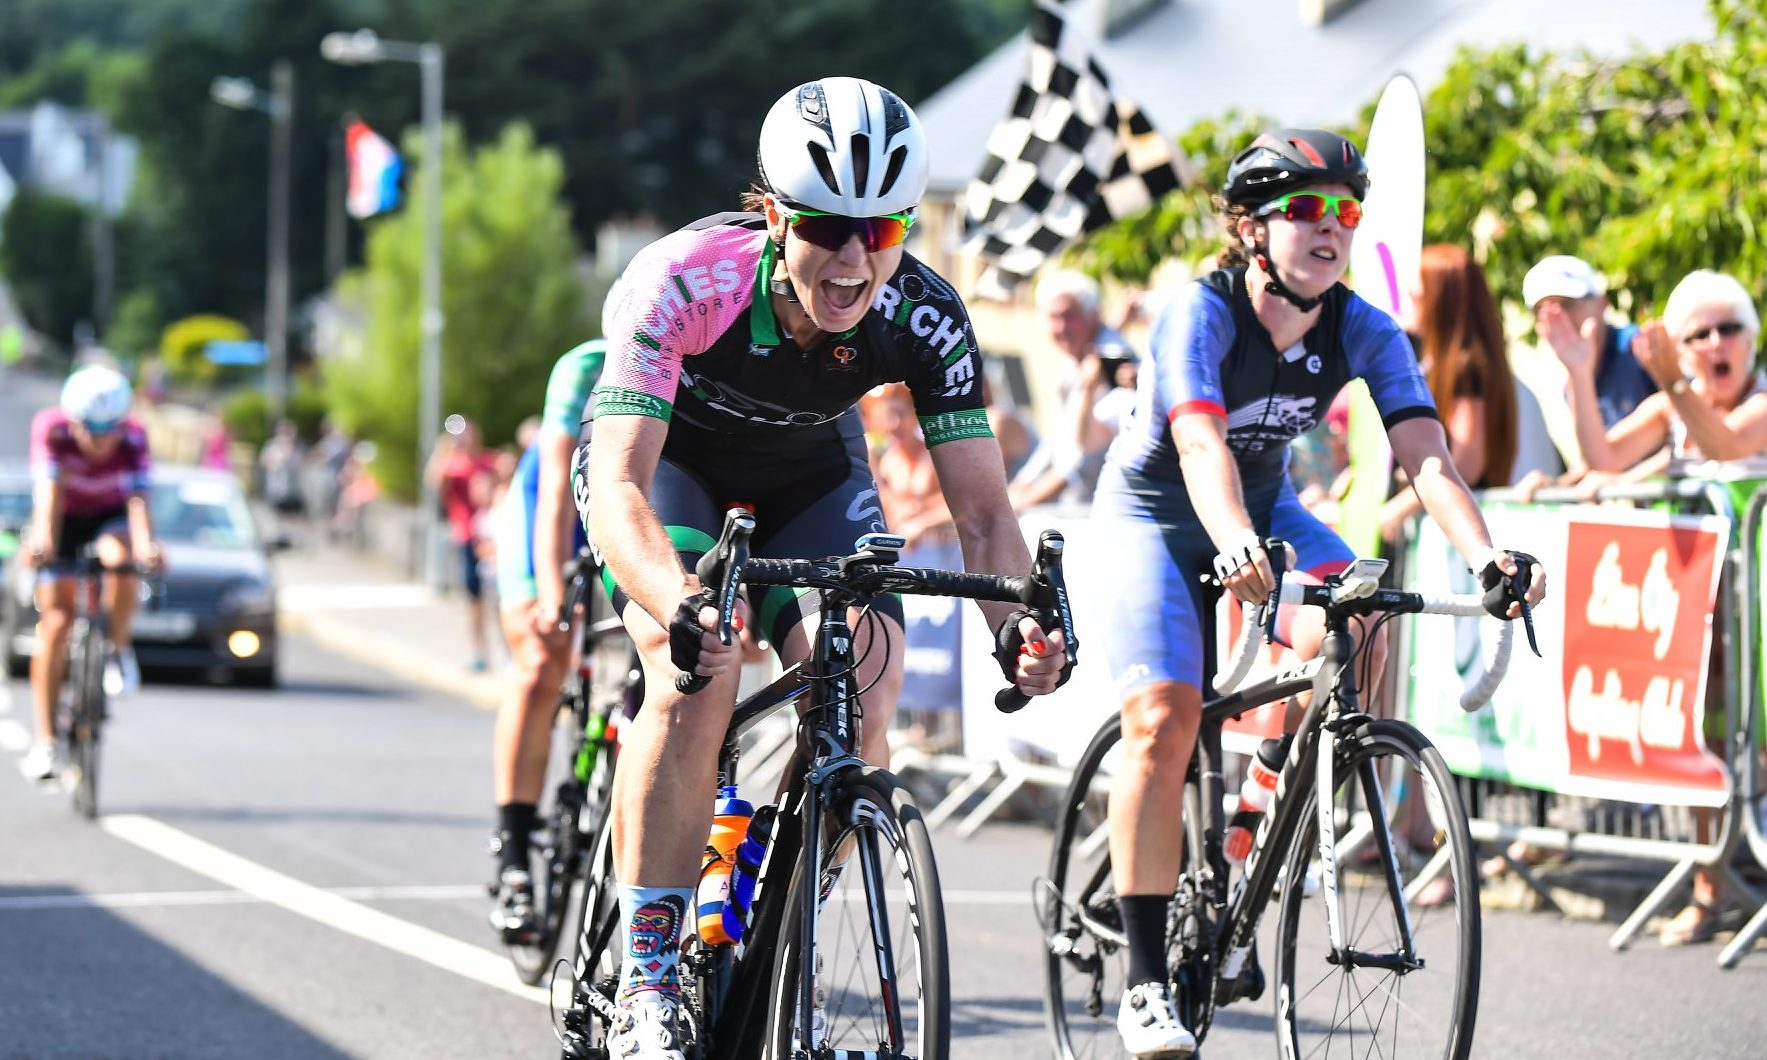 683bfda39 Top Irish women willing and able to attack Rás na mBan 2018 - Sticky ...